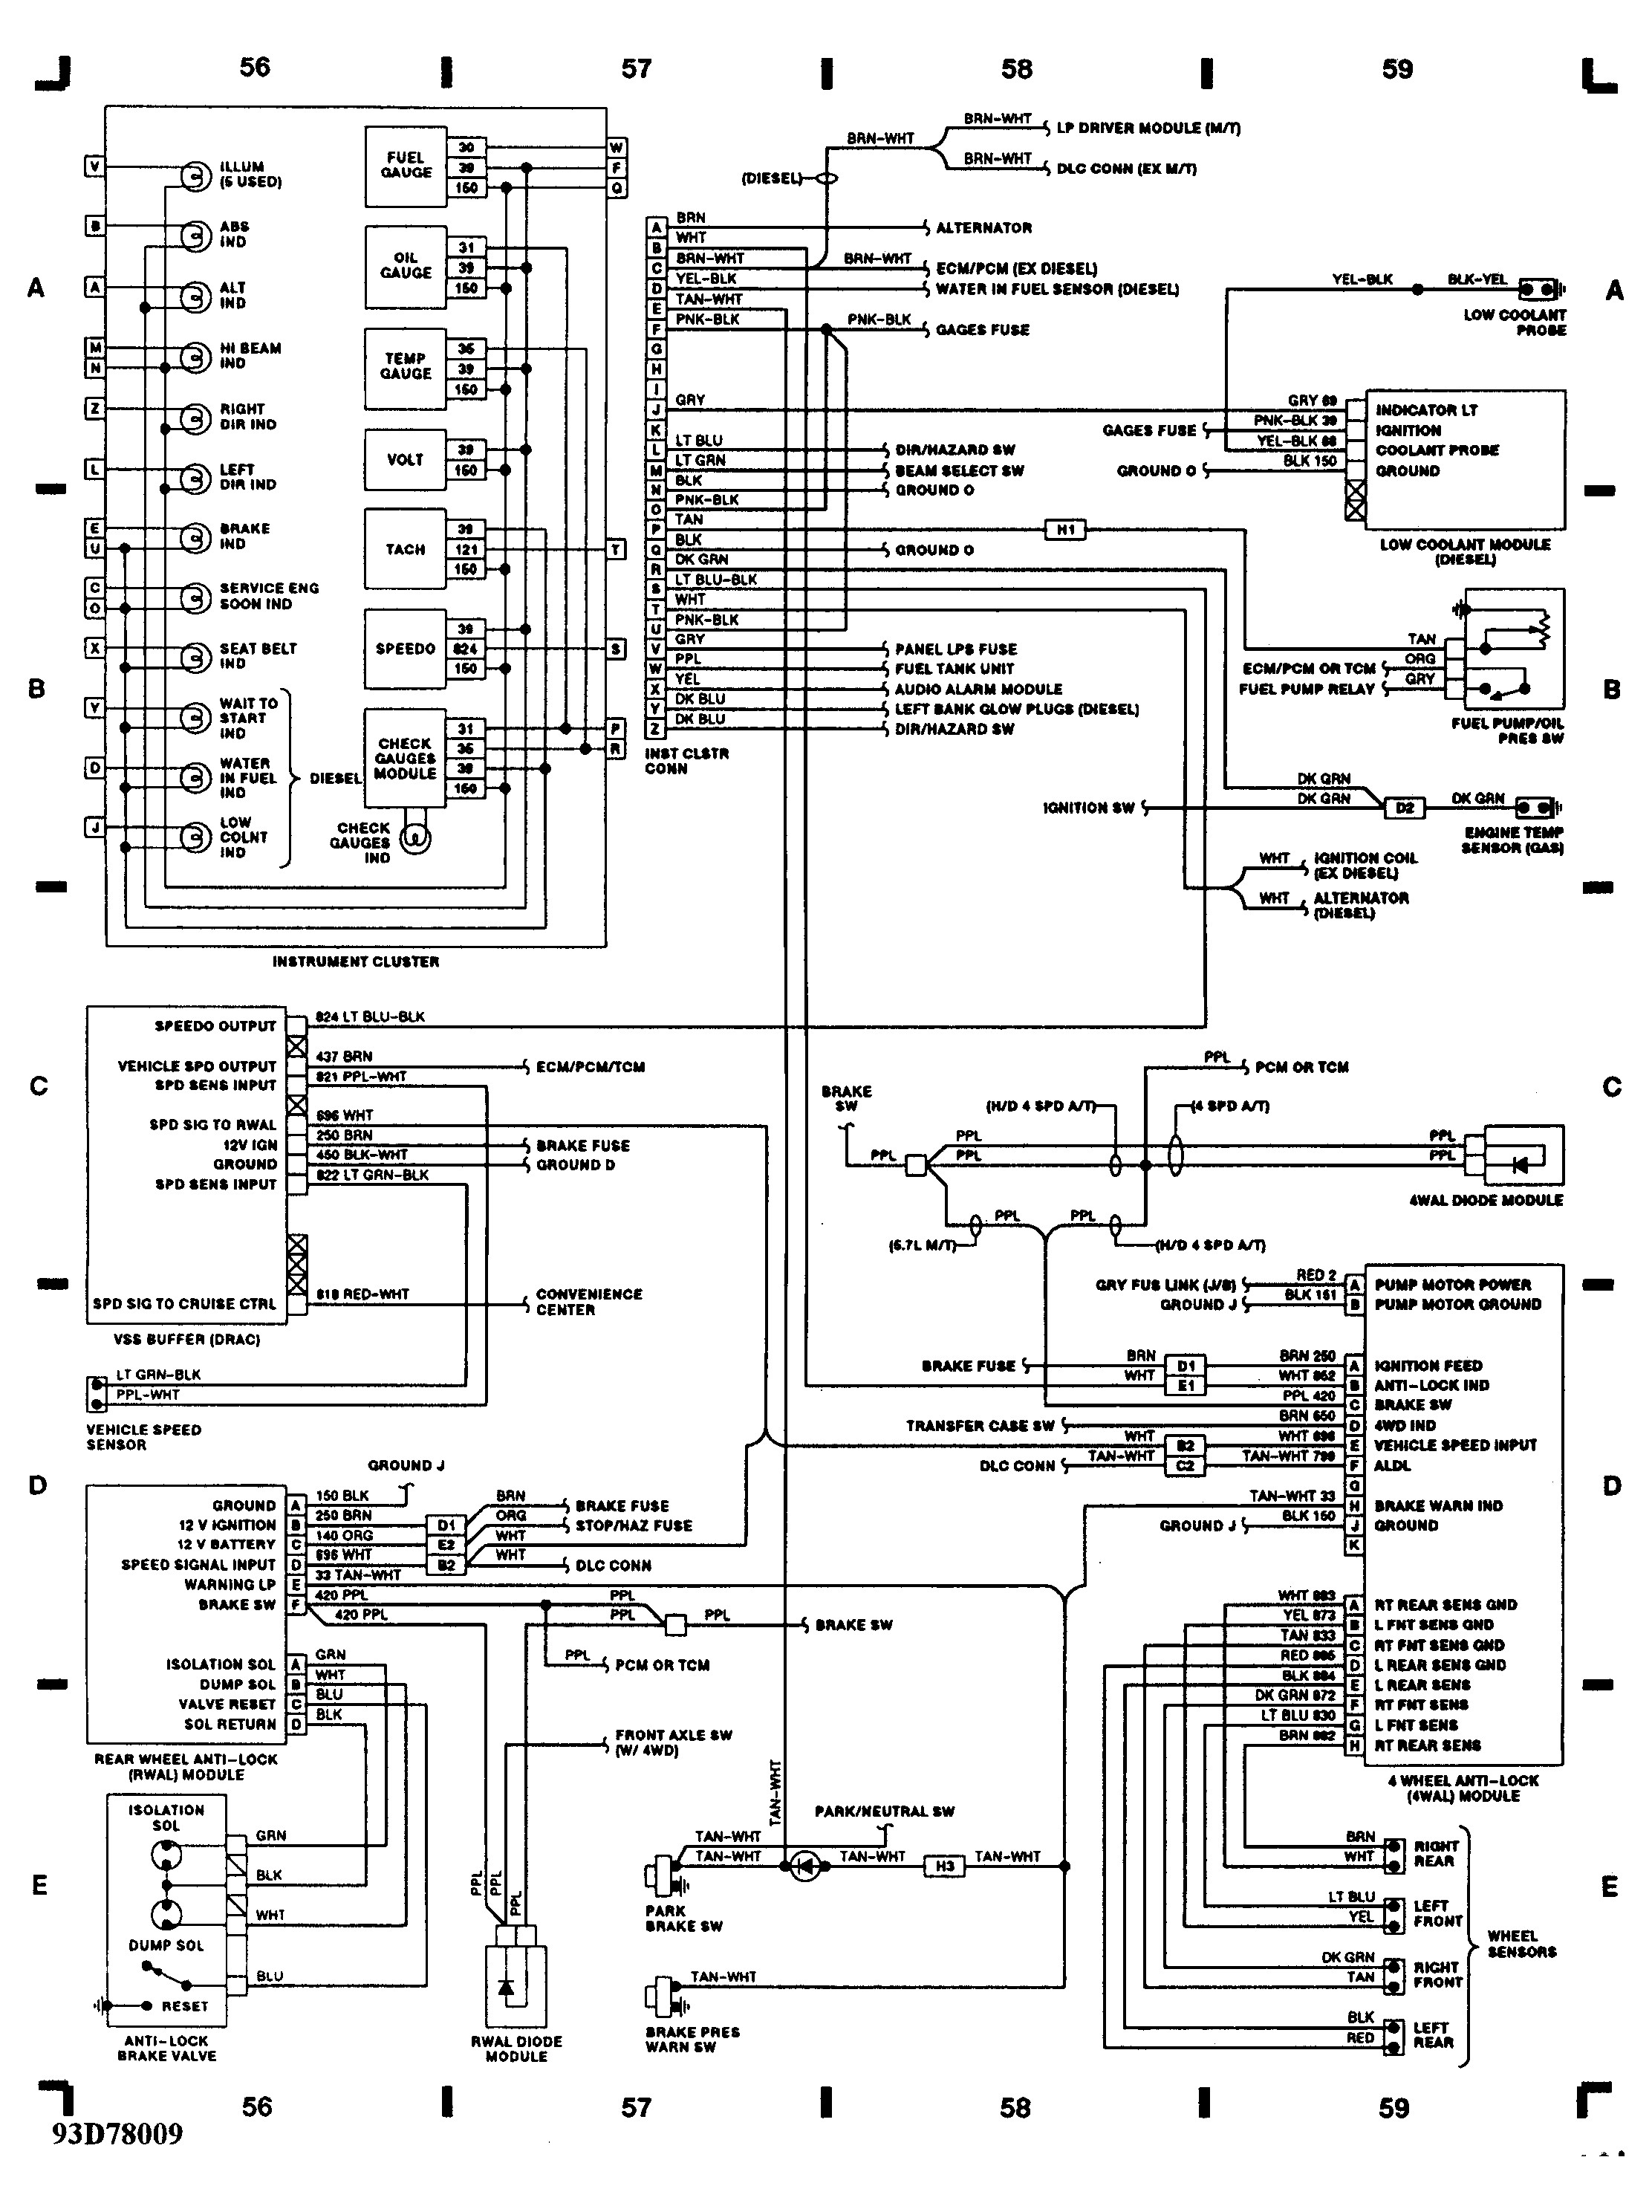 chevy silverado wiring diagram Collection-1993 chevy silverado wiring diagram 1993 Chevy Silverado Wiring Diagram Beautiful I Have A 93 11-j